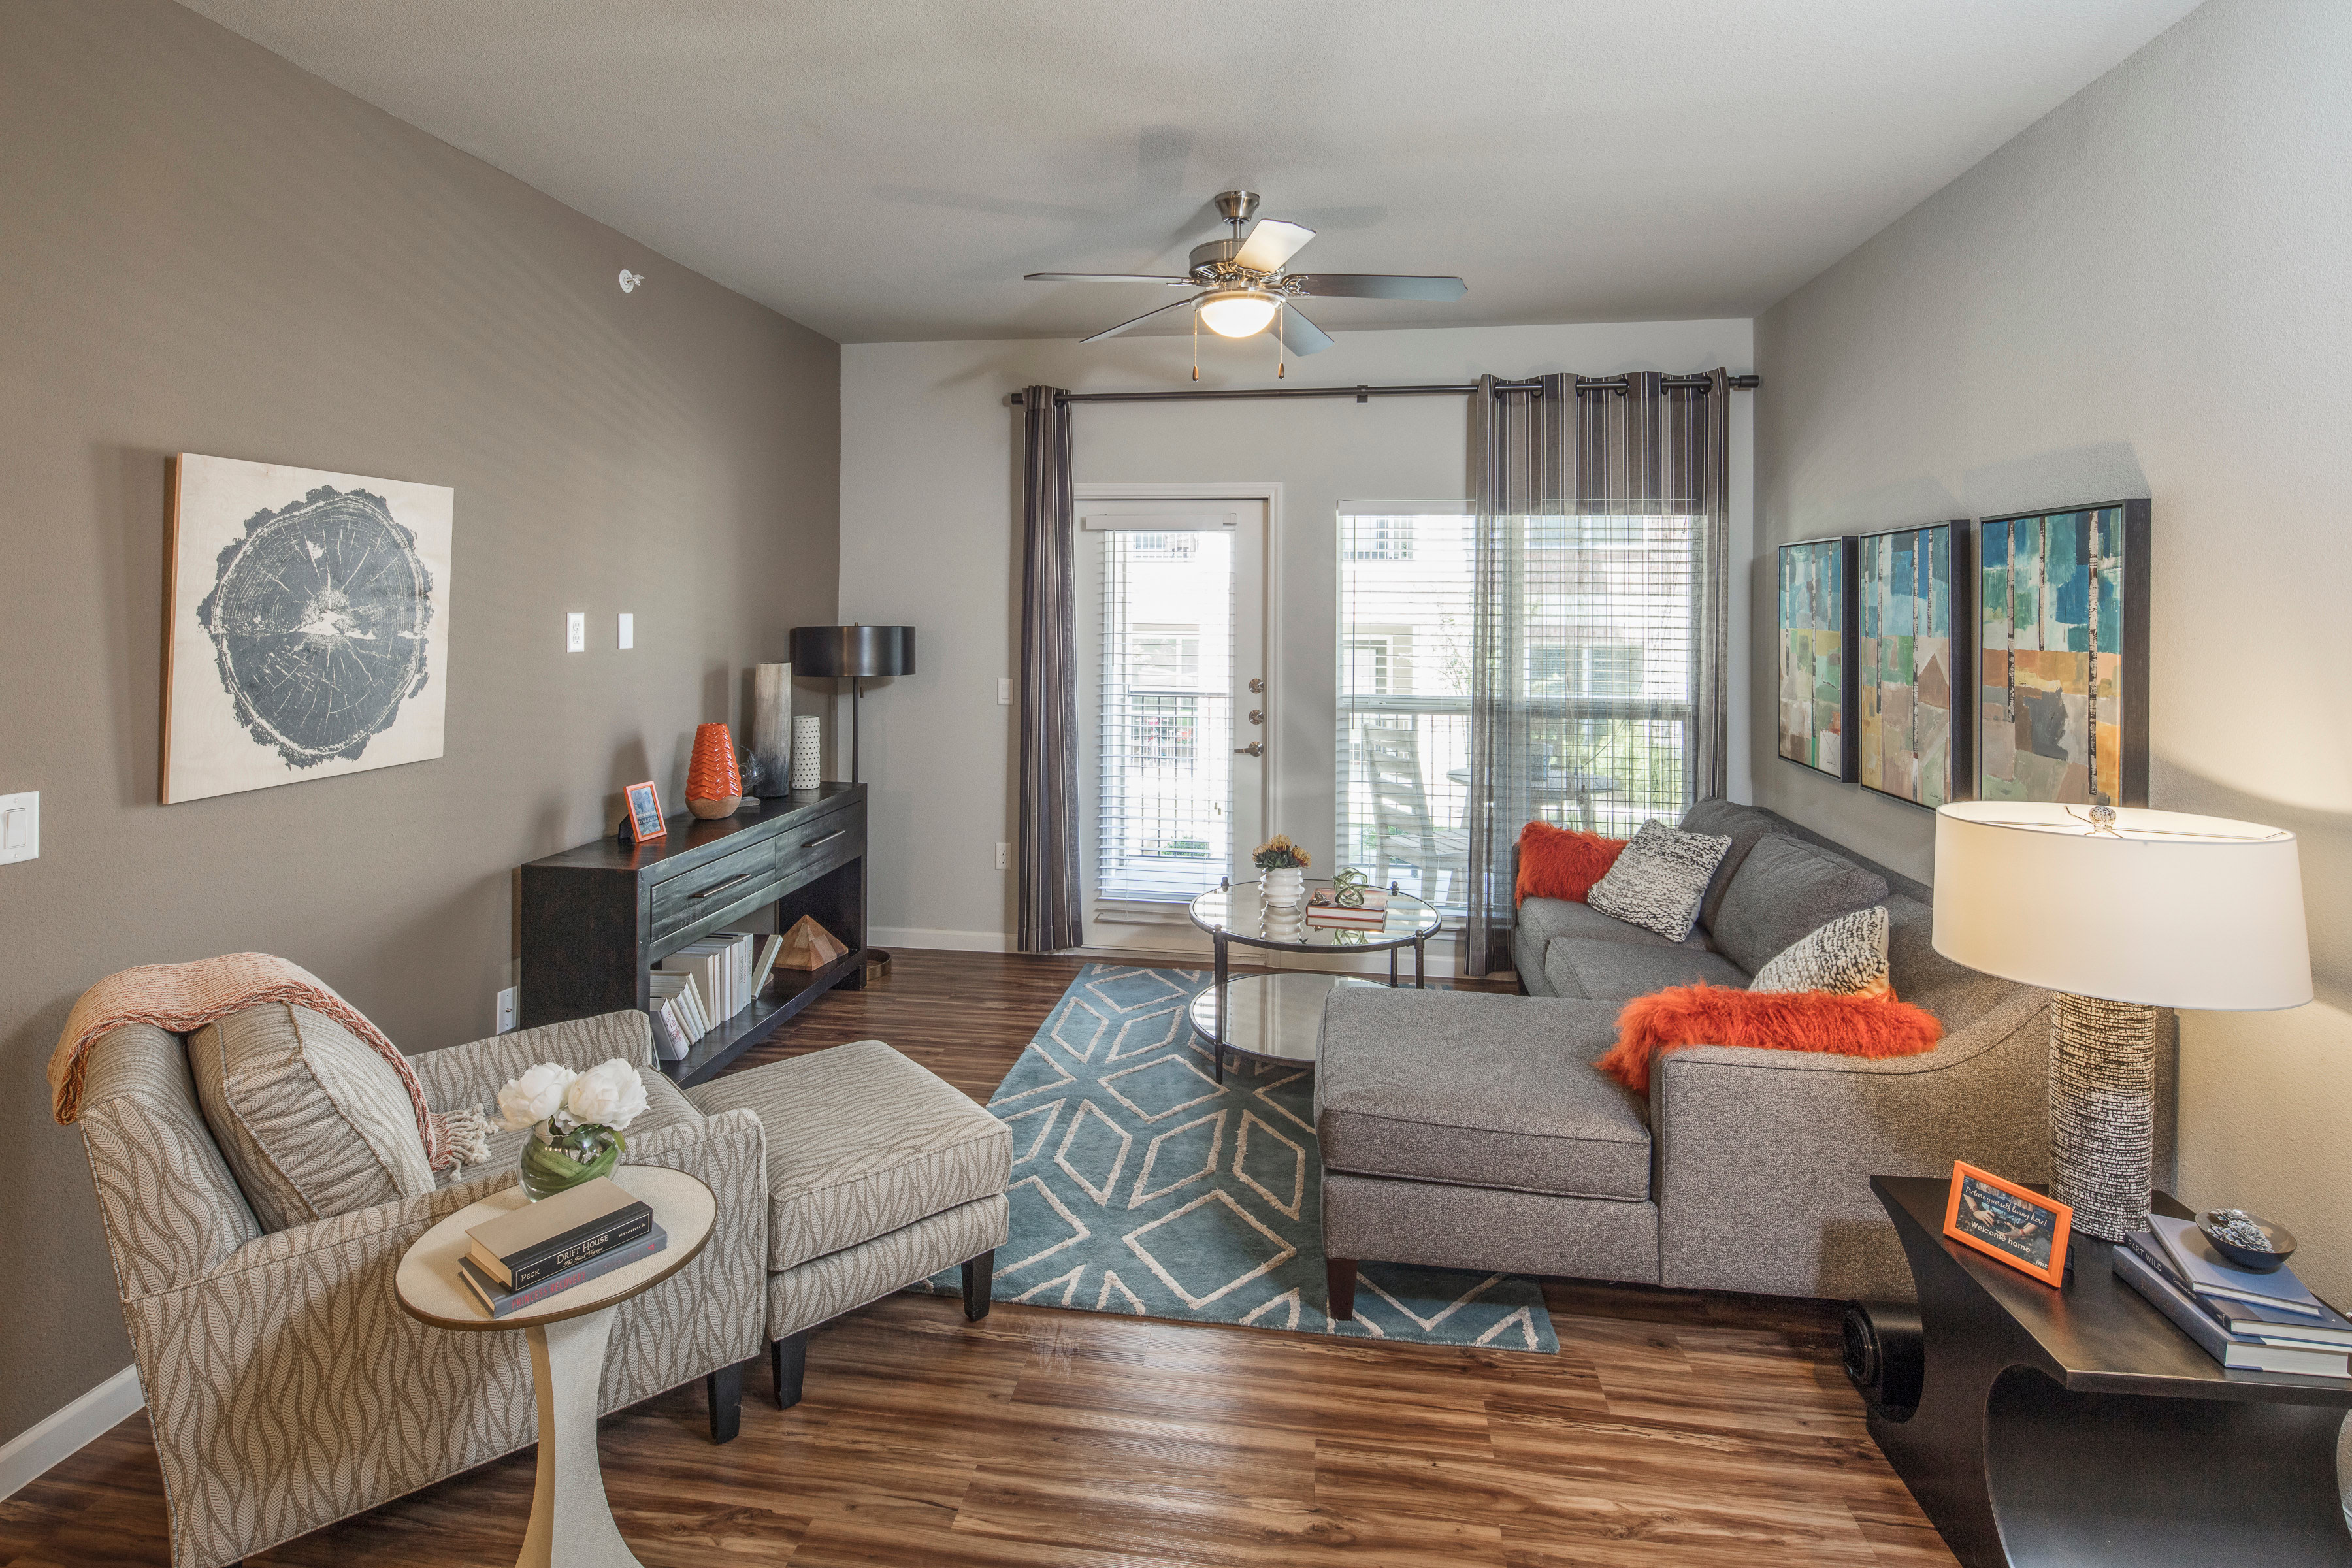 20 Best Apartments For Rent In Buda TX with pictures